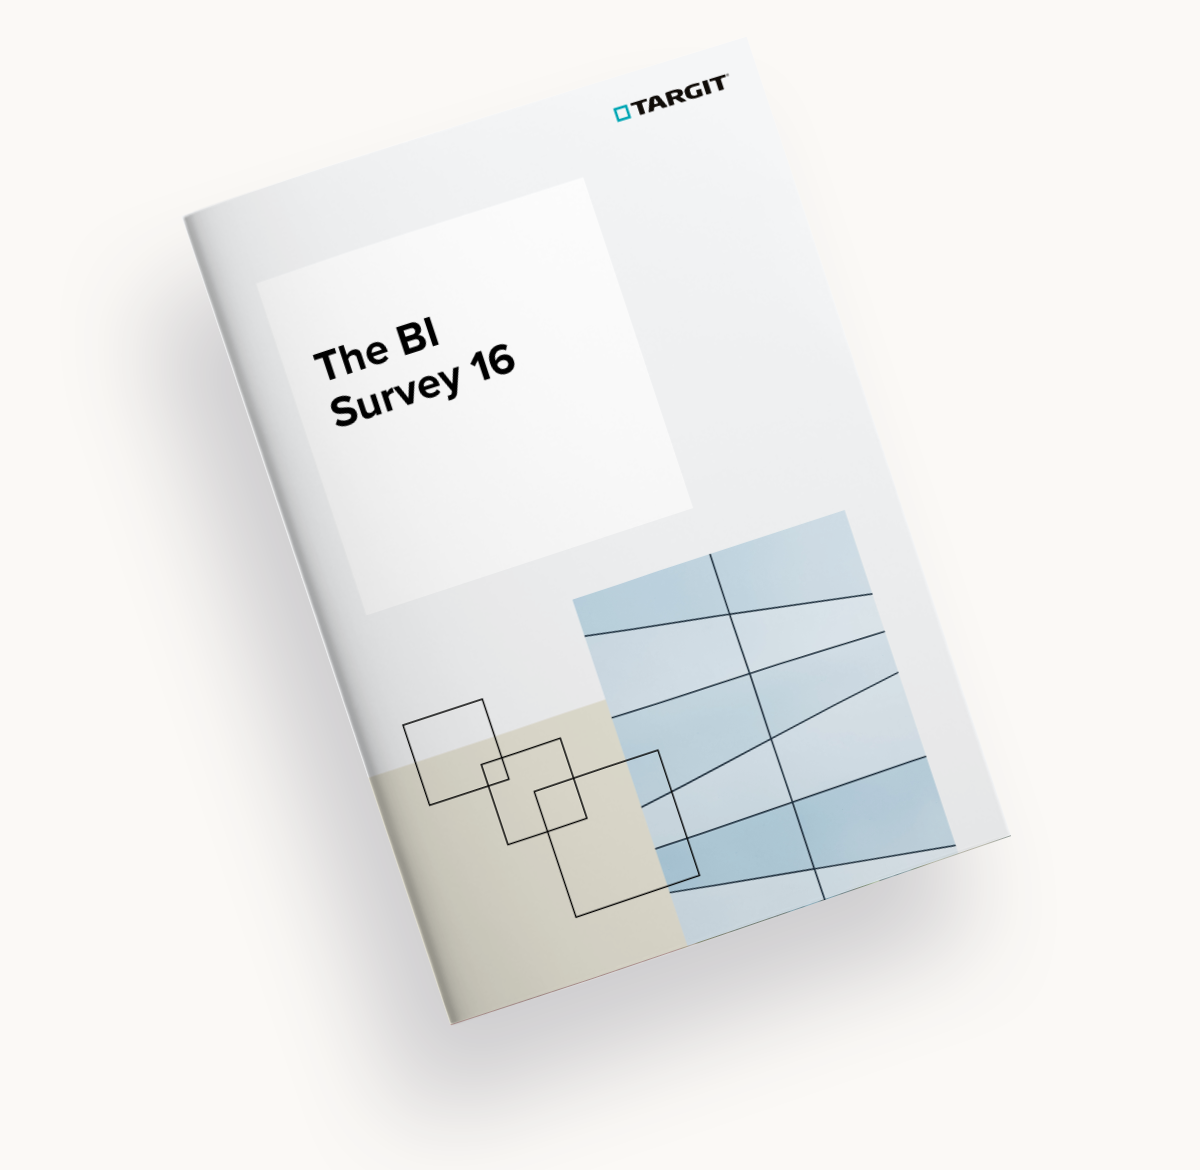 TARGIT was named a leader across 18 different categories in The BI Survey 16